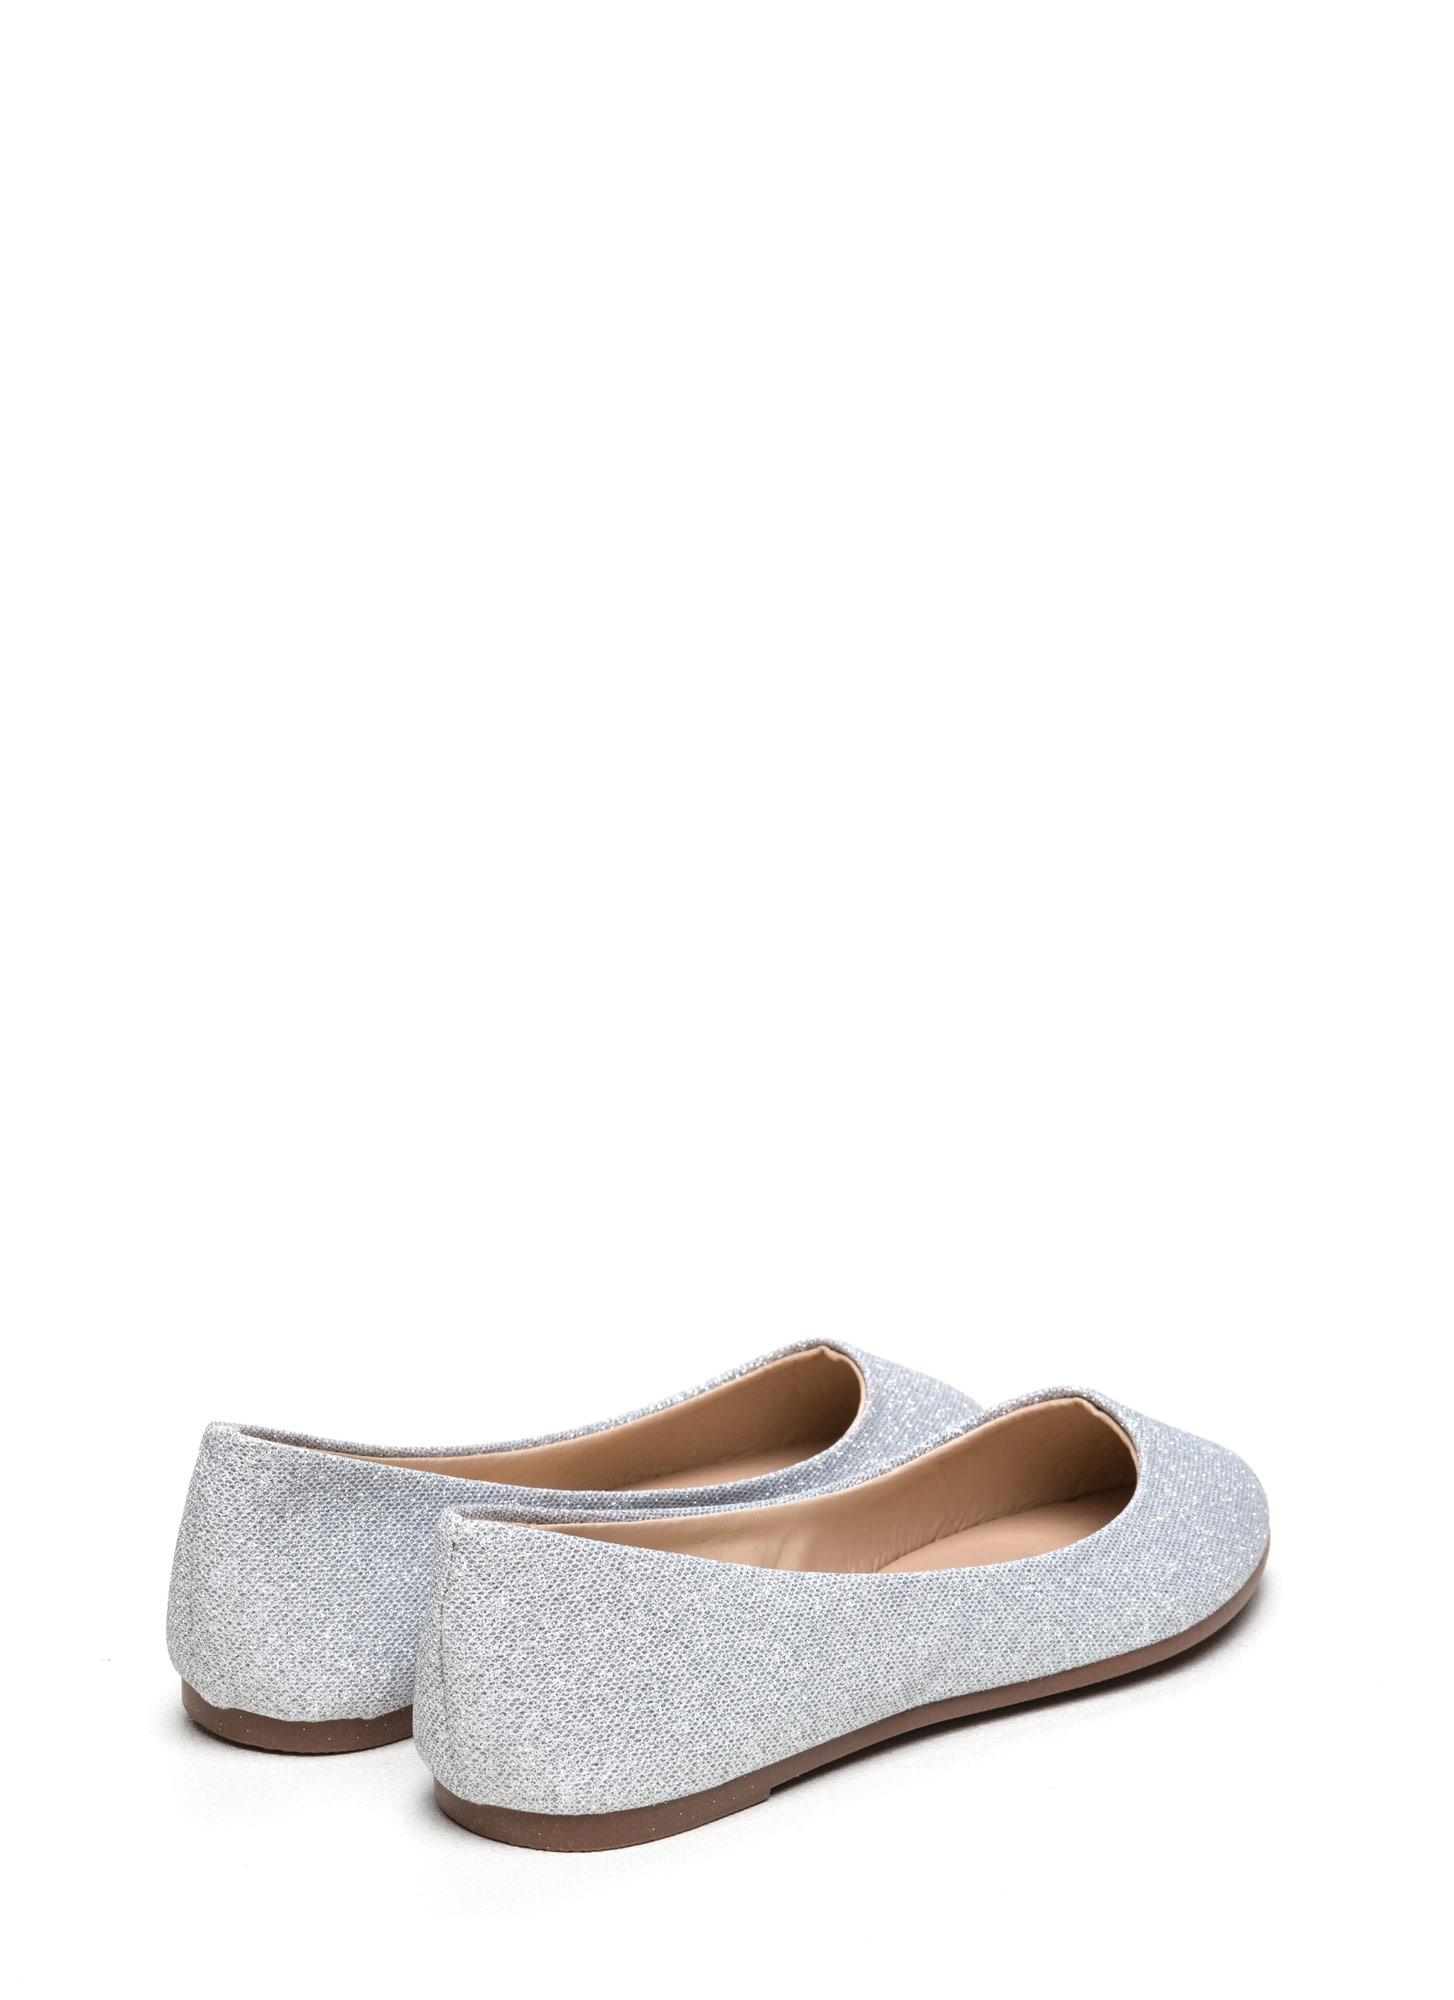 Flawless Round Toe Ballet Flats SILVER